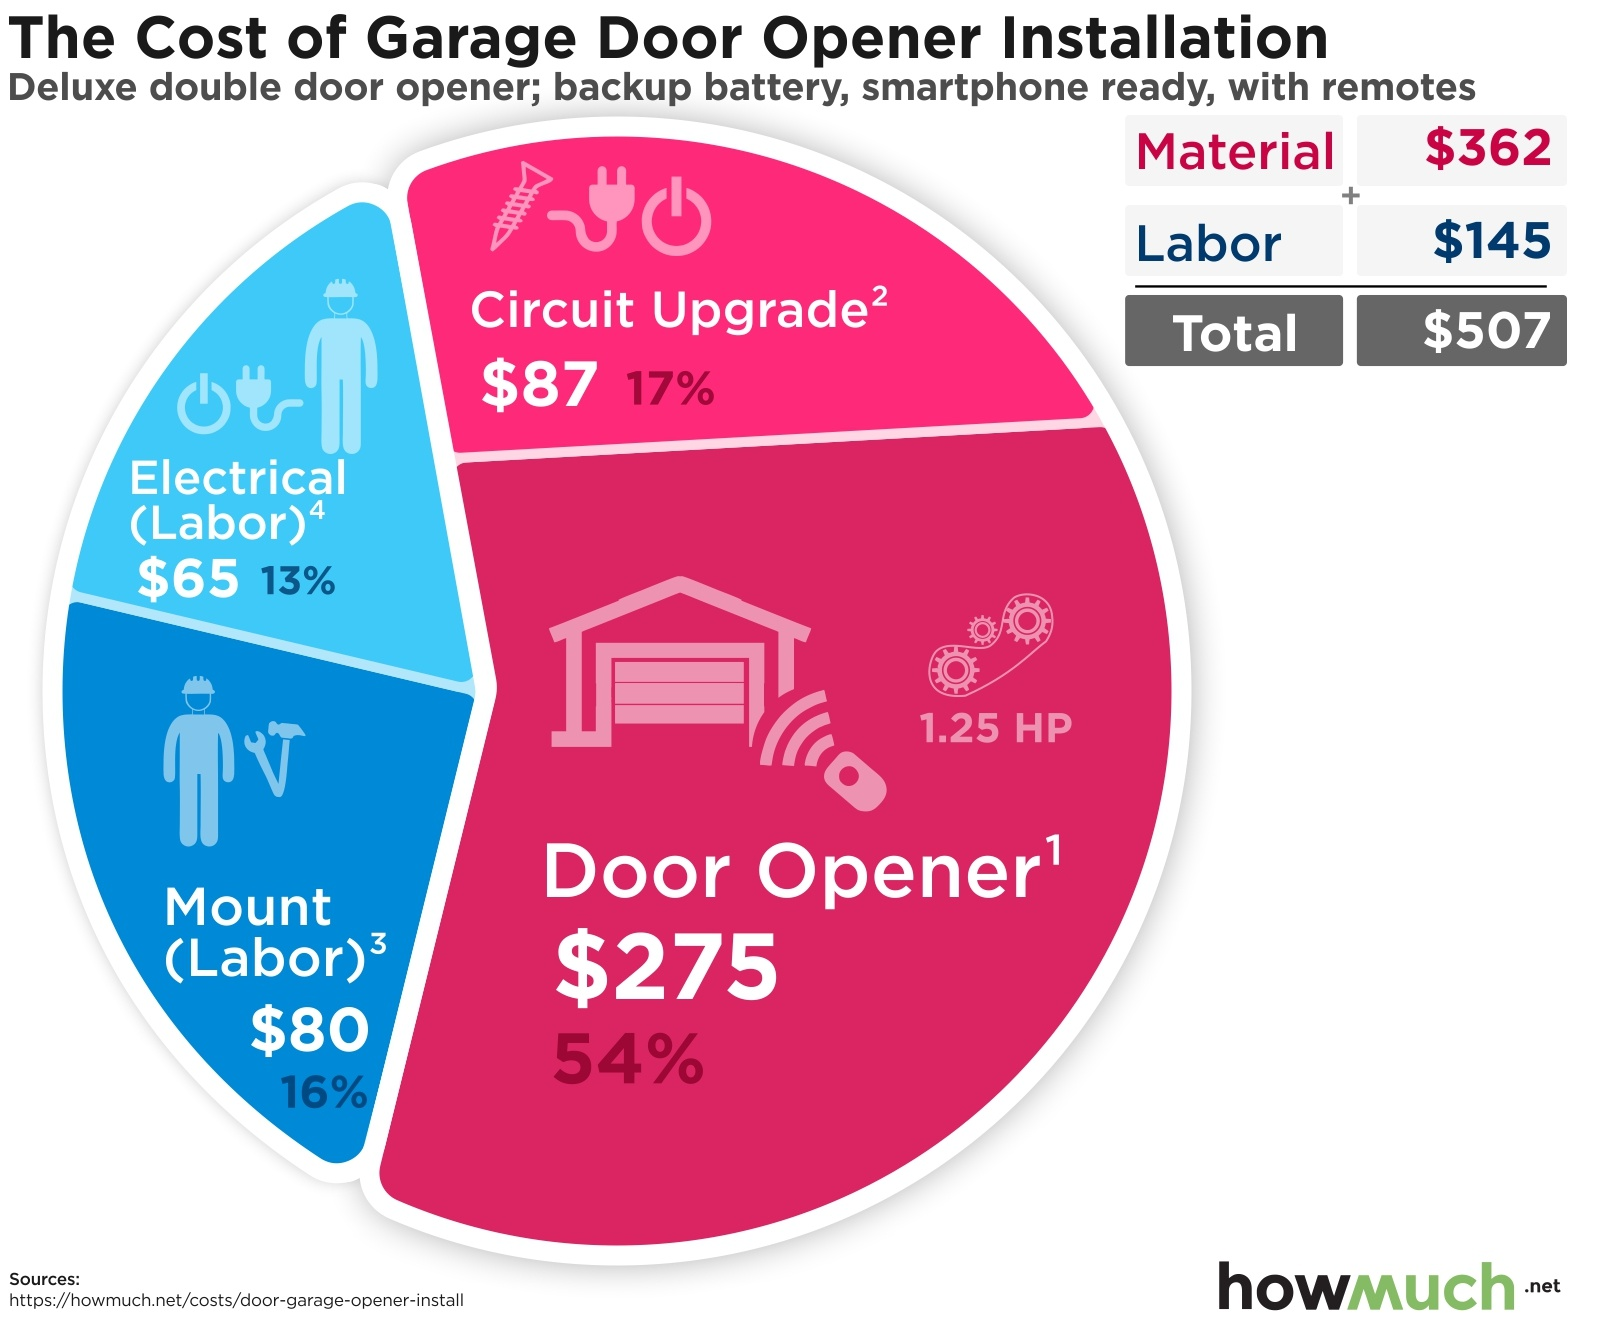 The Cost of Garage Door Opener Installation